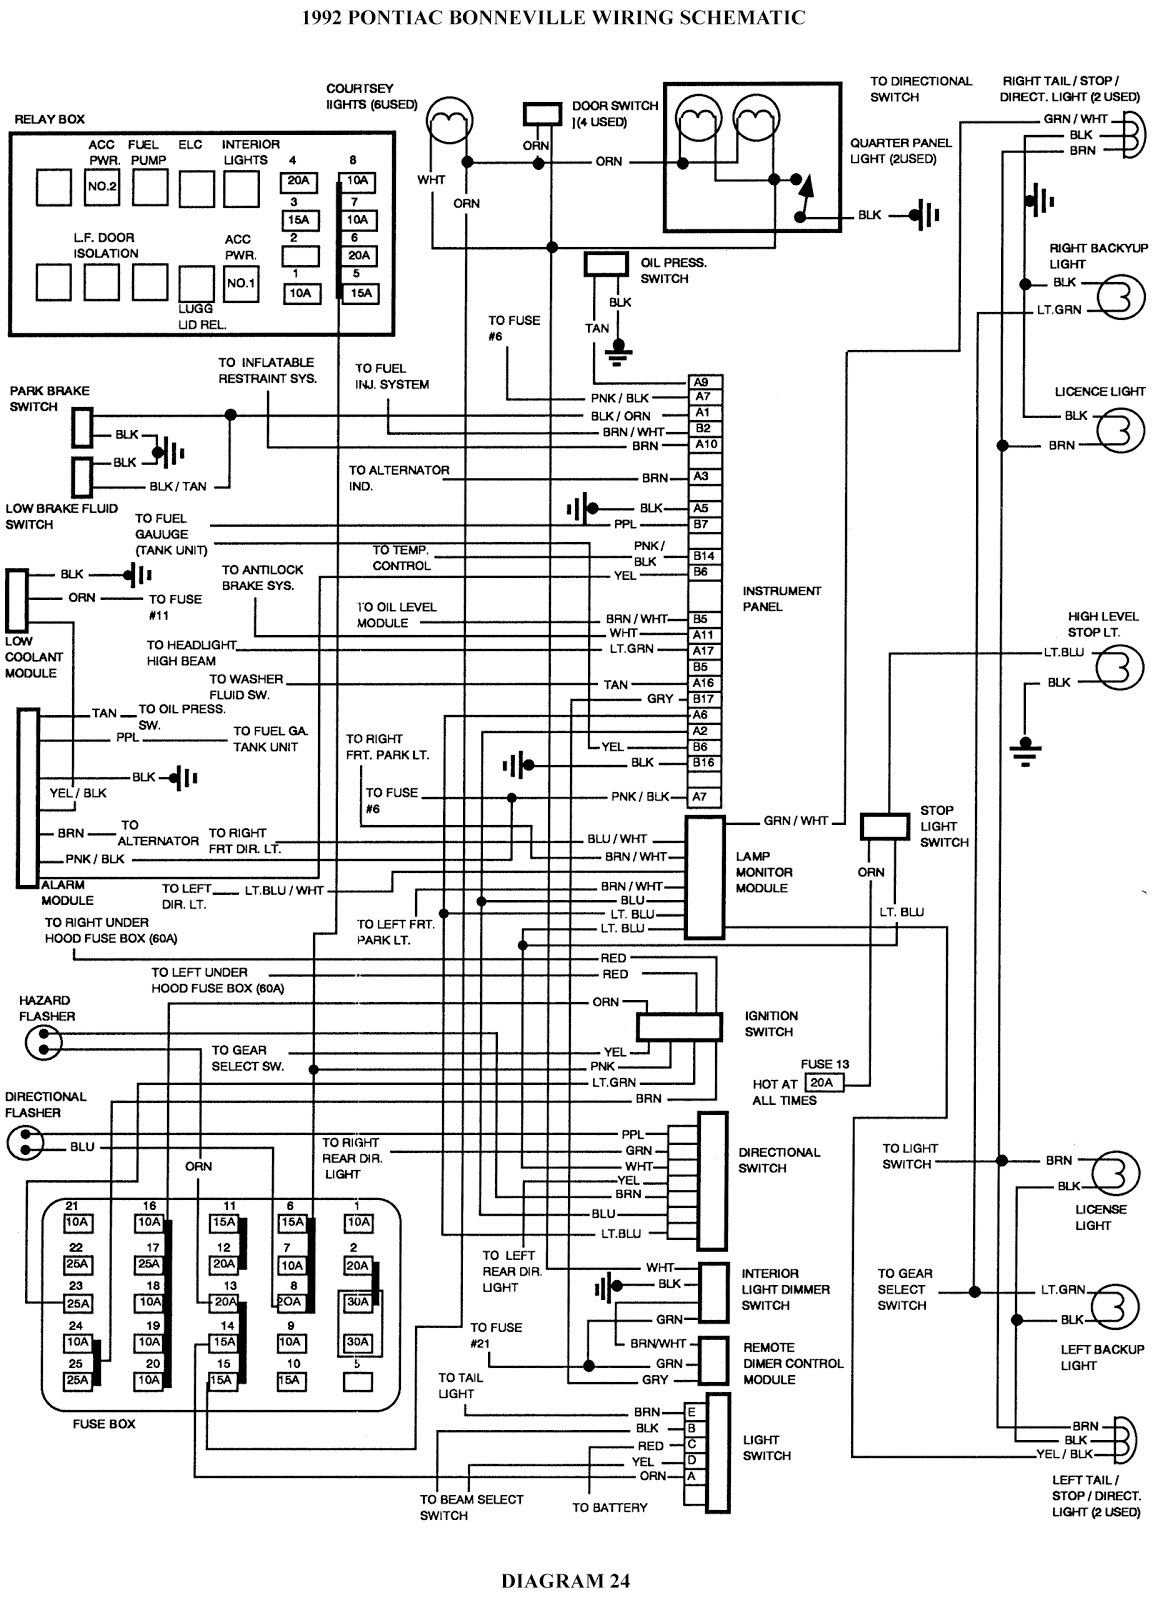 Ford Crown Victoria Alternator Diagram